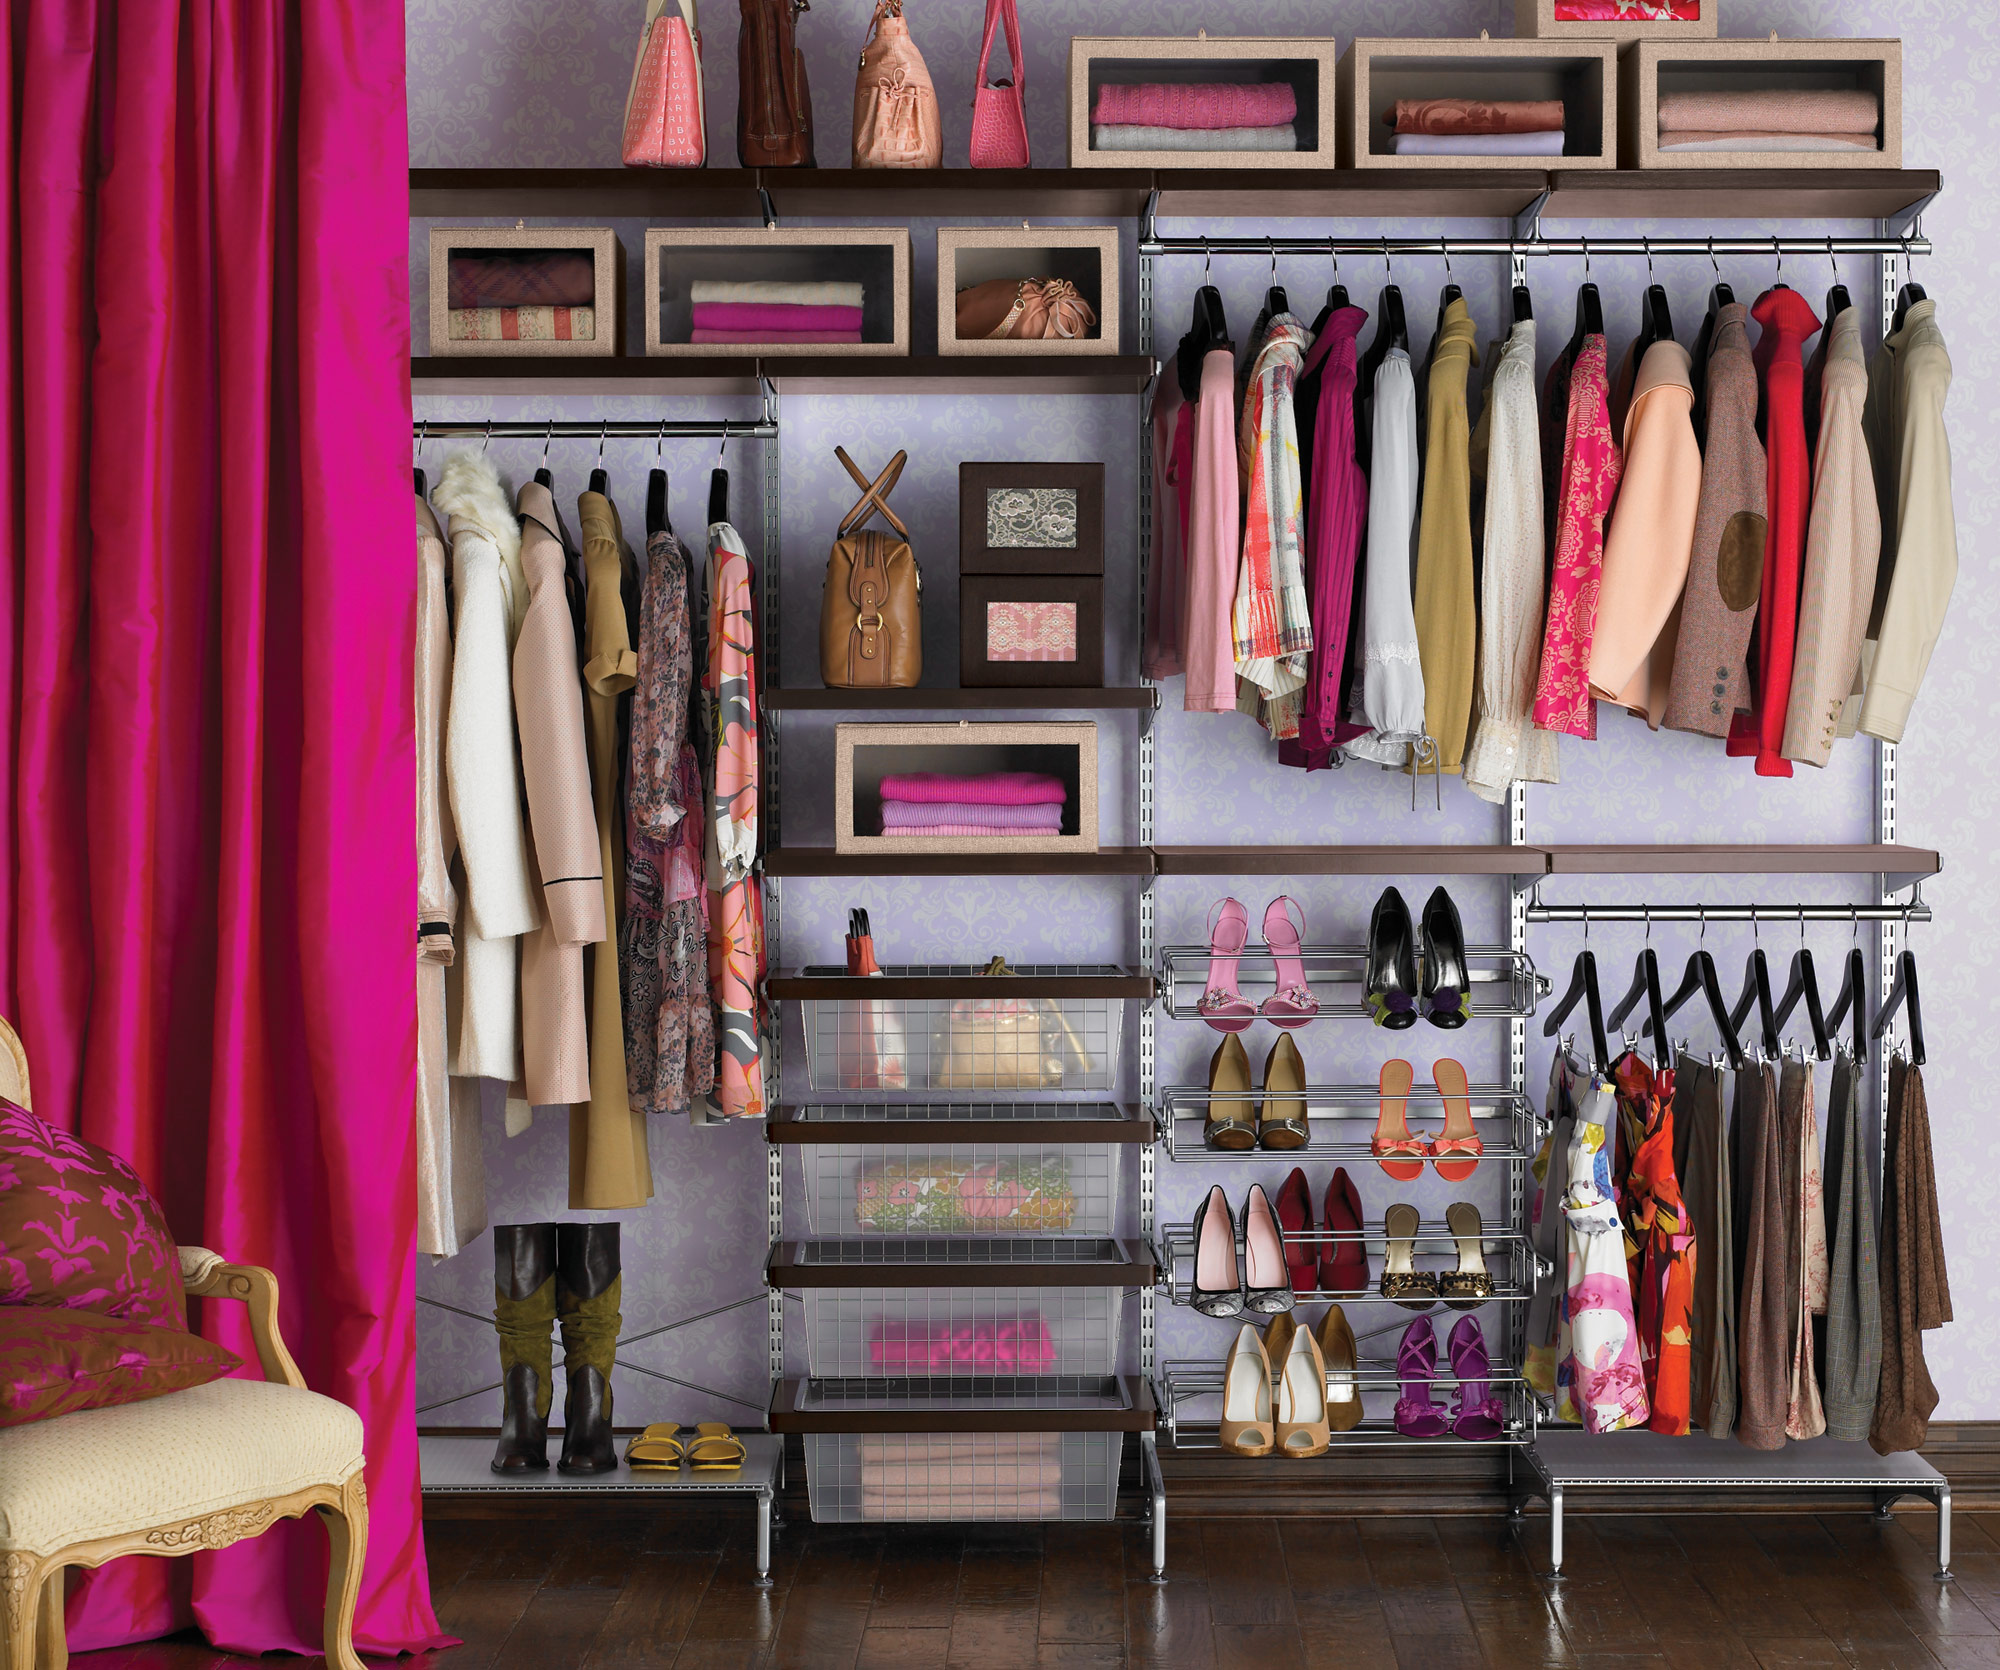 Most Women Consider Keeping Their Closet Organized To Be A Daunting Task You Let Your Go For Few Days And Suddenly It Is In Complete Disarray